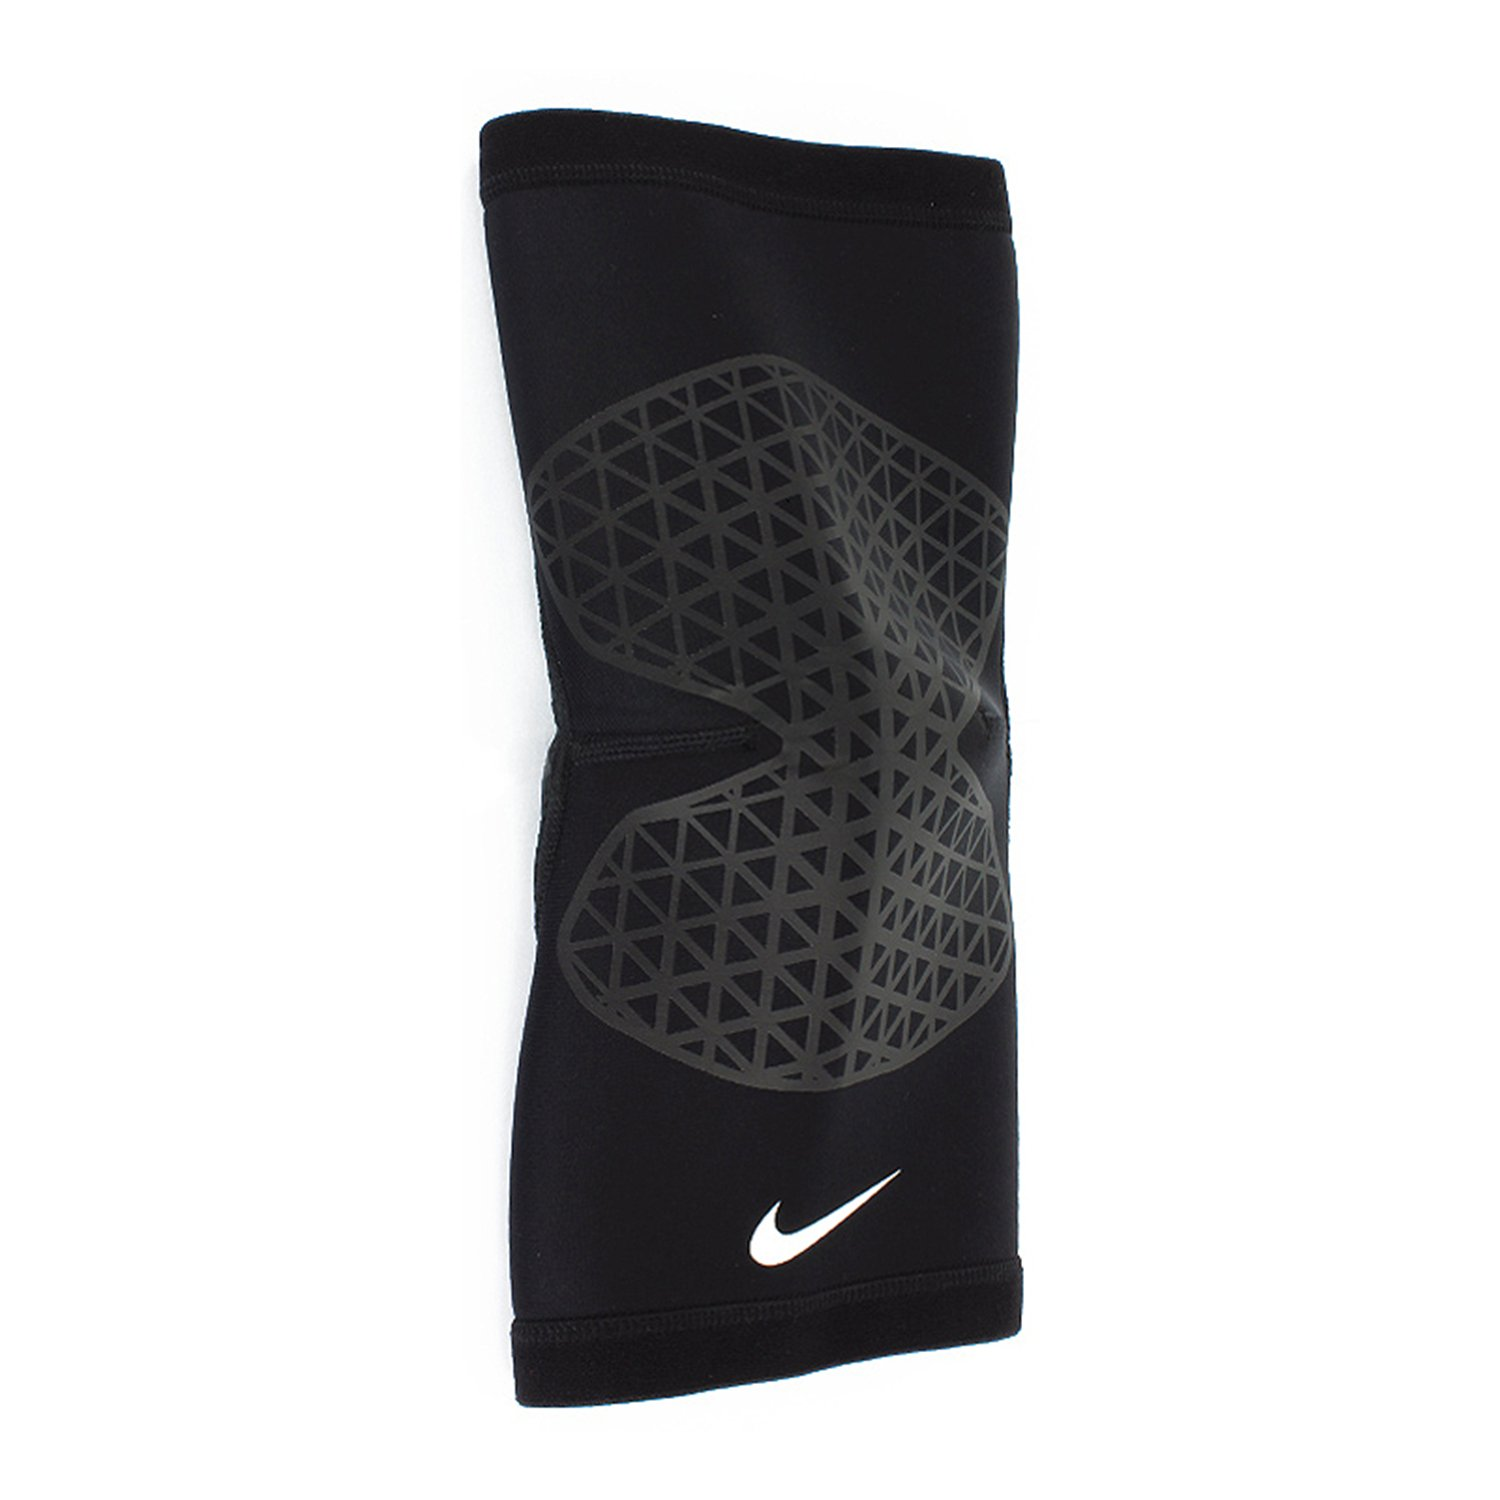 Exceptionnel Amazon.com: Nike Pro Combat Knee Sleeve: Sports & Outdoors BF52